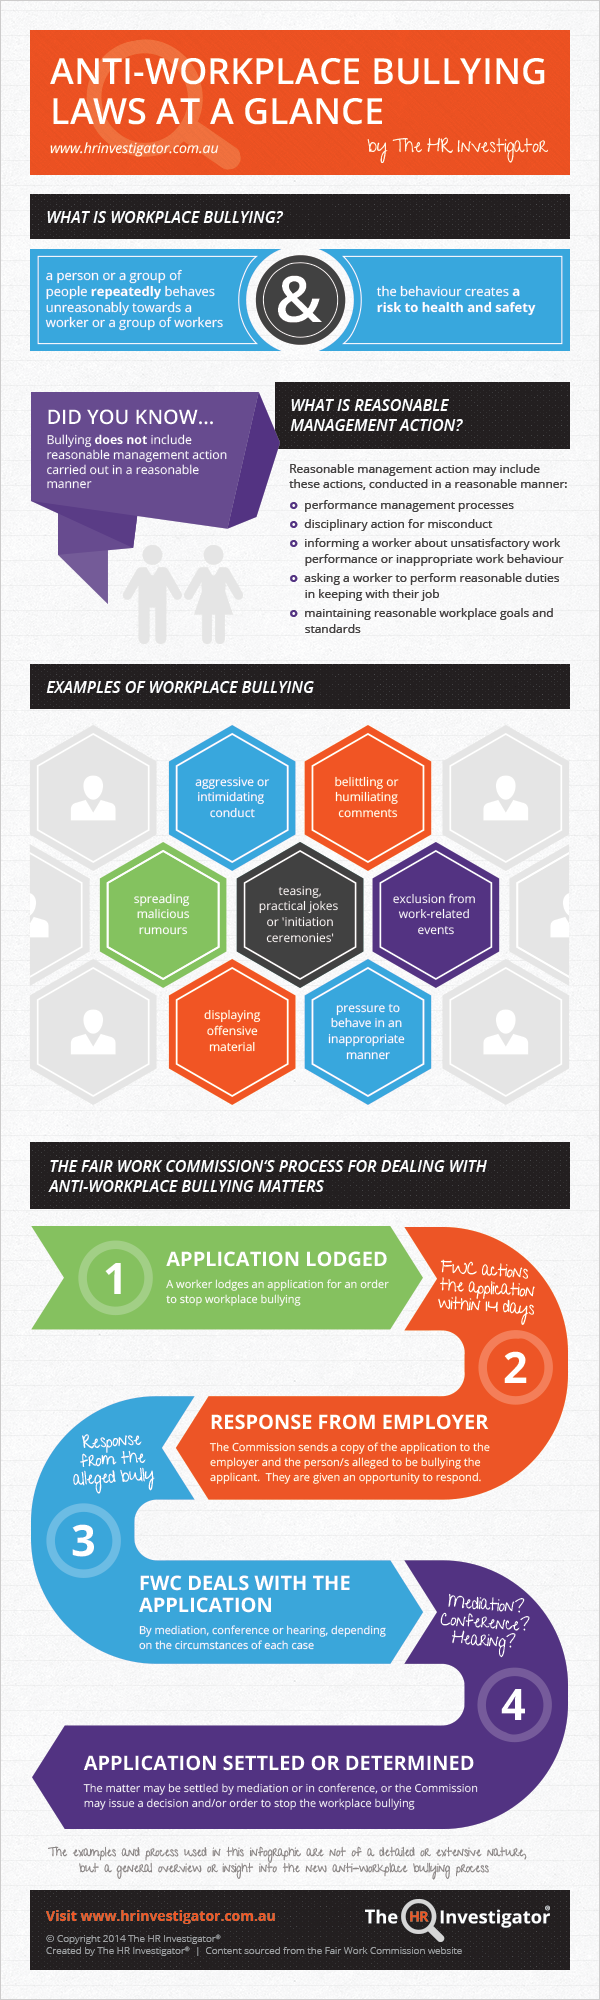 [INFOGRAPHIC] Anti-Workplace Bullying Laws at a glance